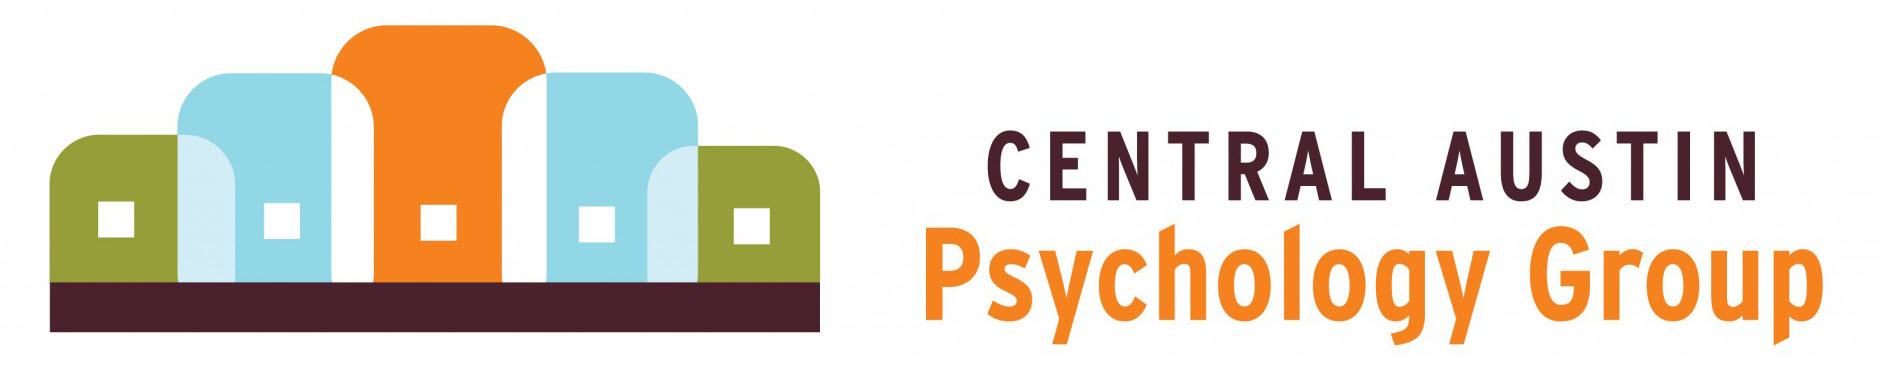 Central Austin Psychology Group